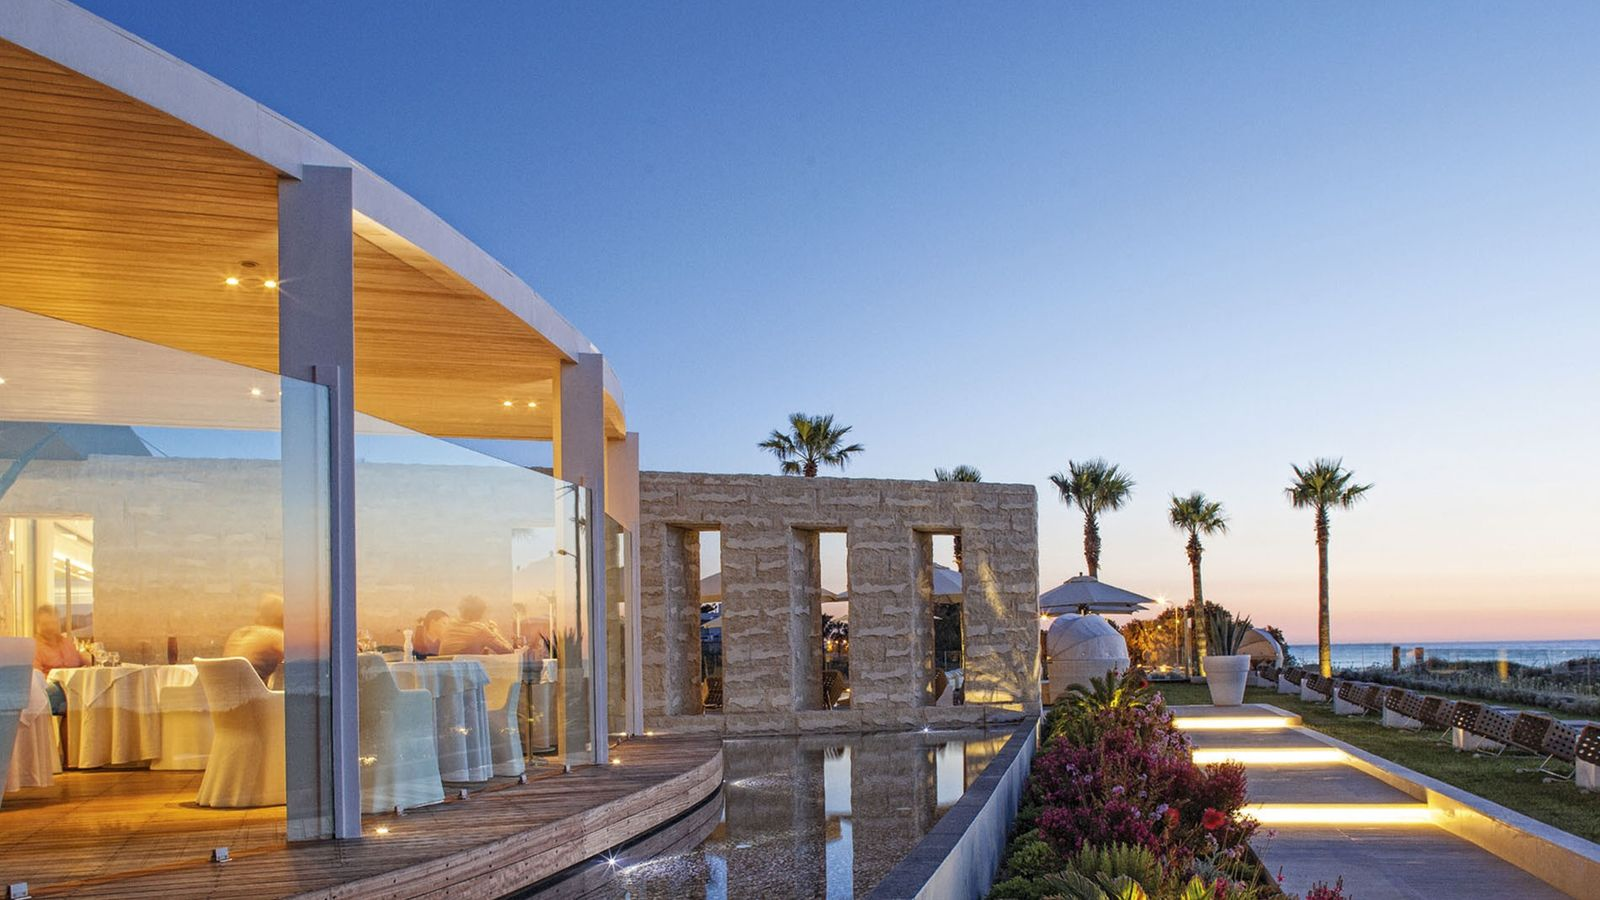 Restaurant with a view of the garden at AQUA BLU Boutique Hotel and Spa